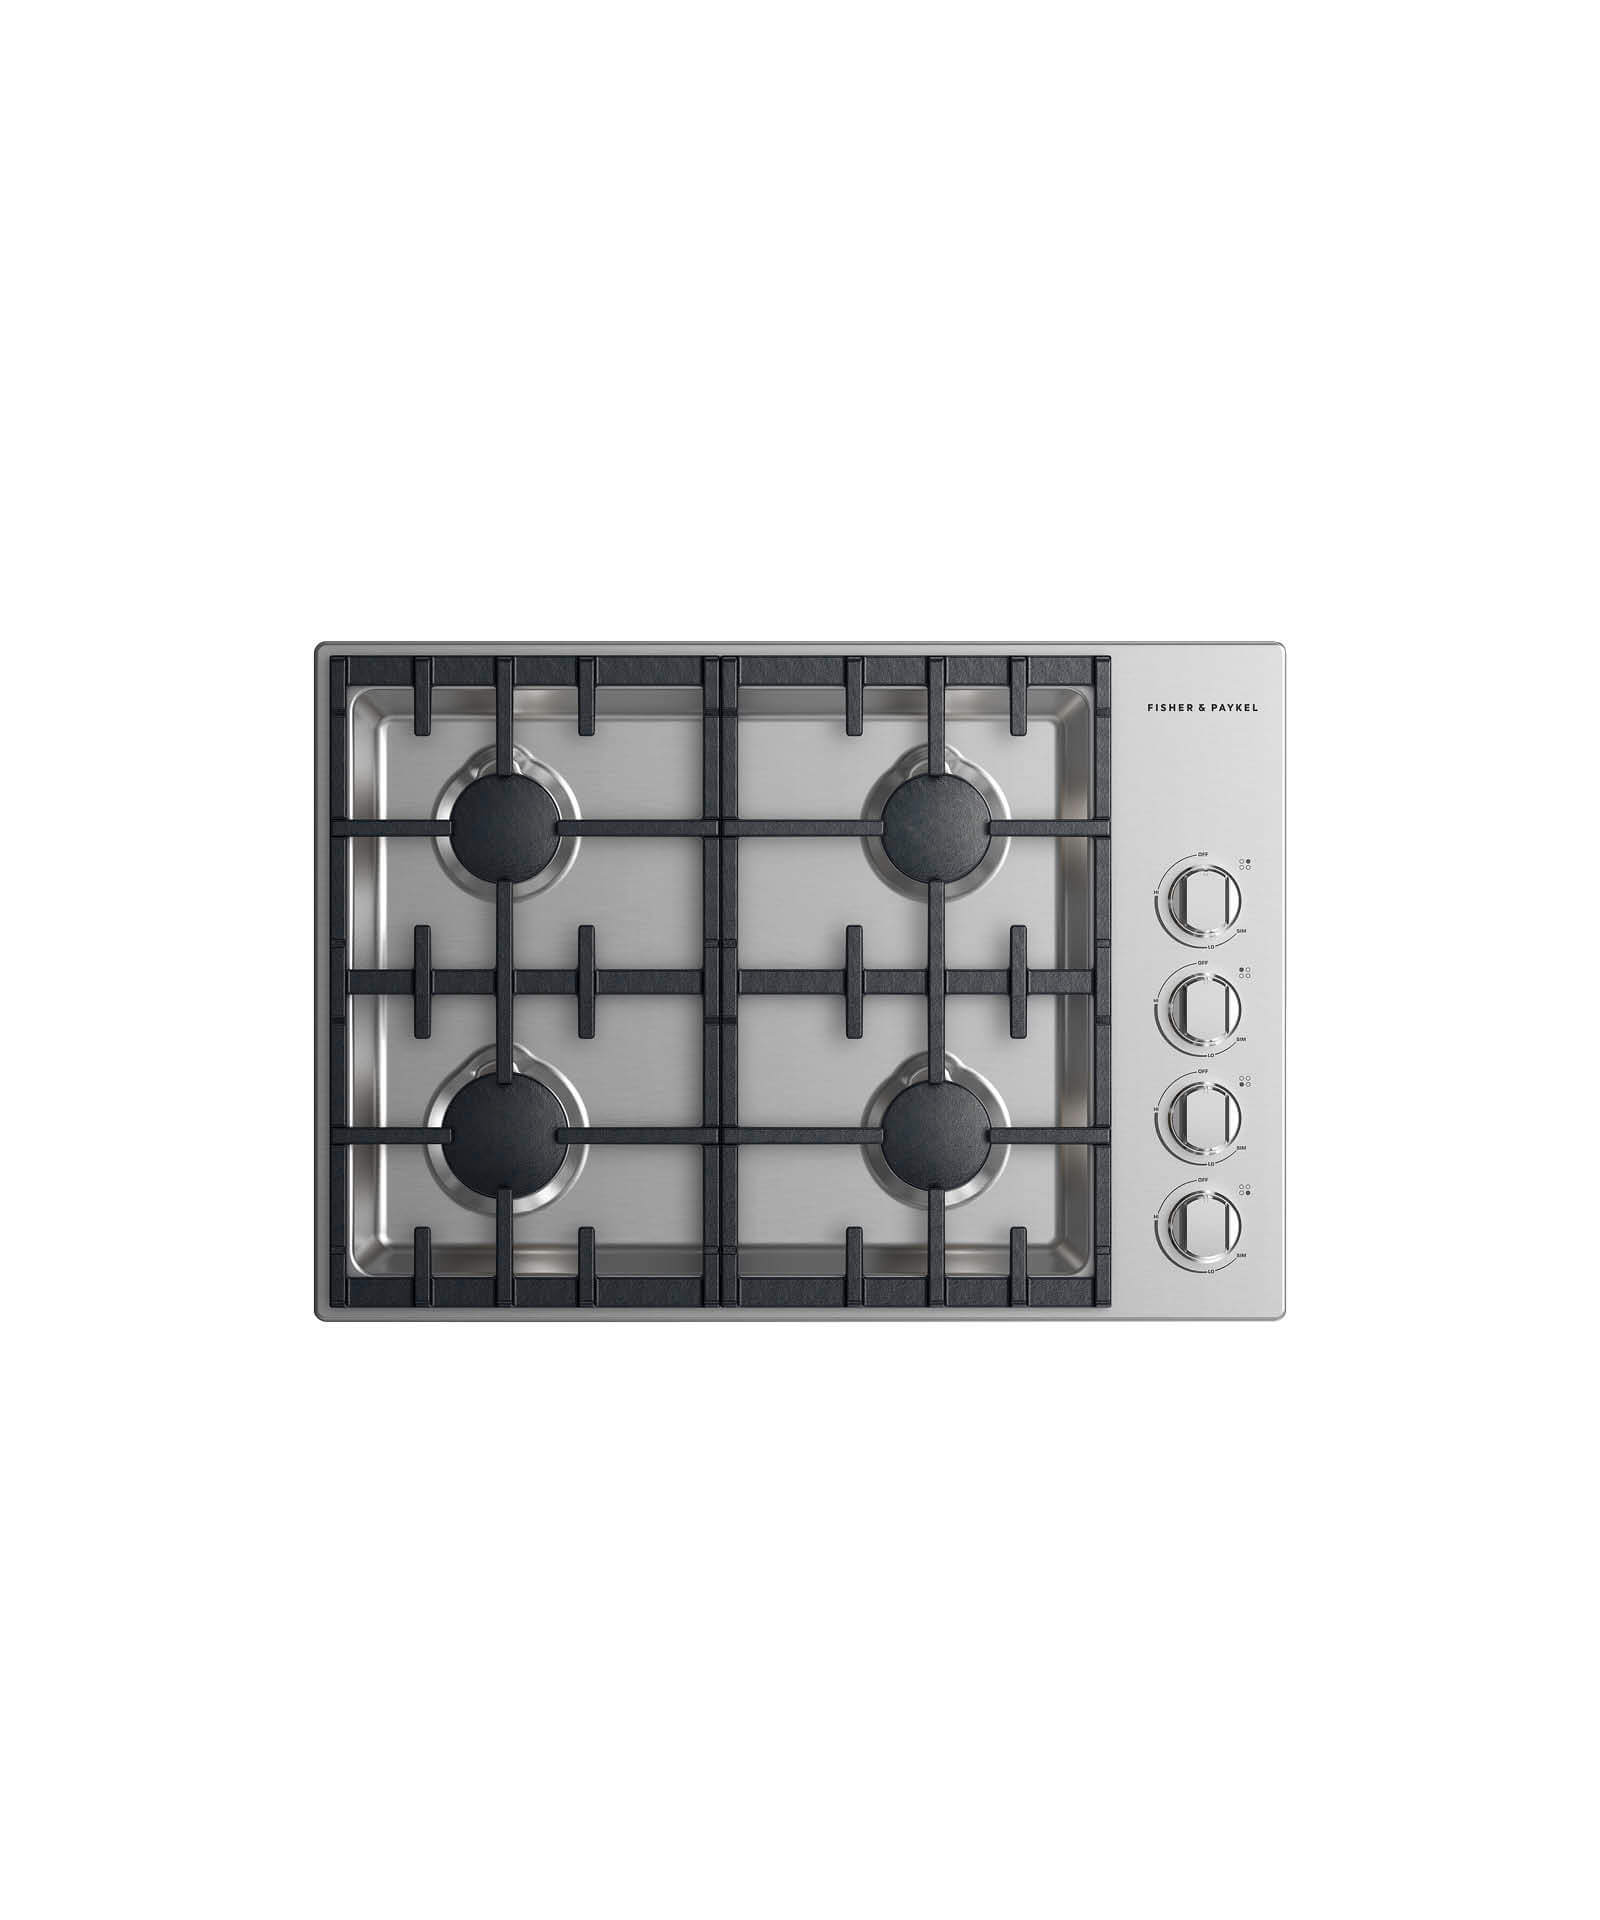 """Fisher and Paykel Gas Cooktop 30"""", 4 burner (LPG)"""